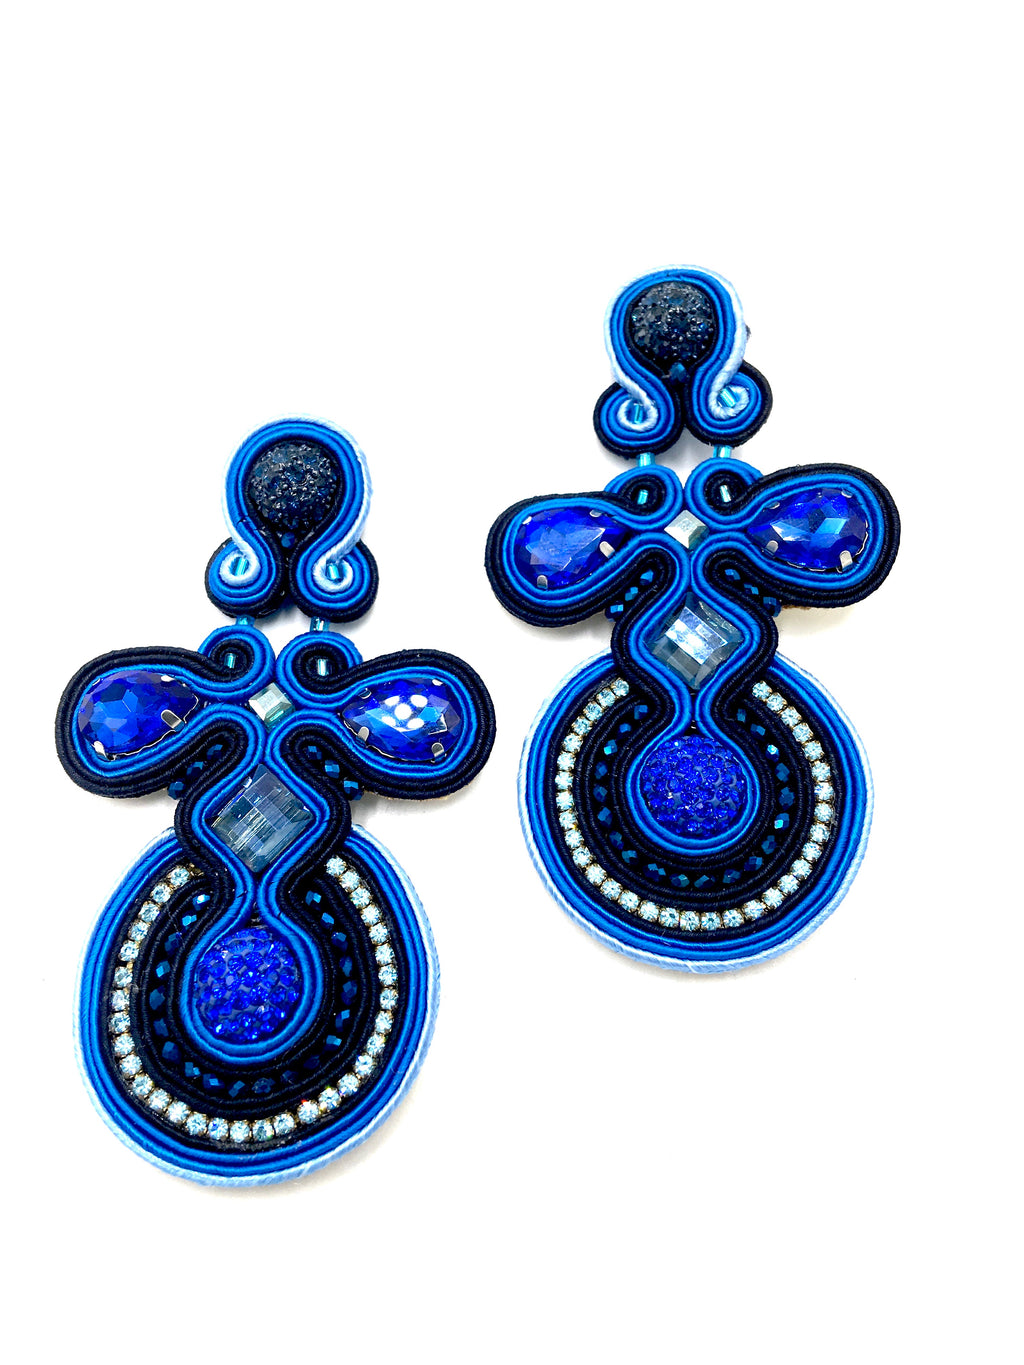 Electricity blue and shades of blue Swarovski droplet earings.